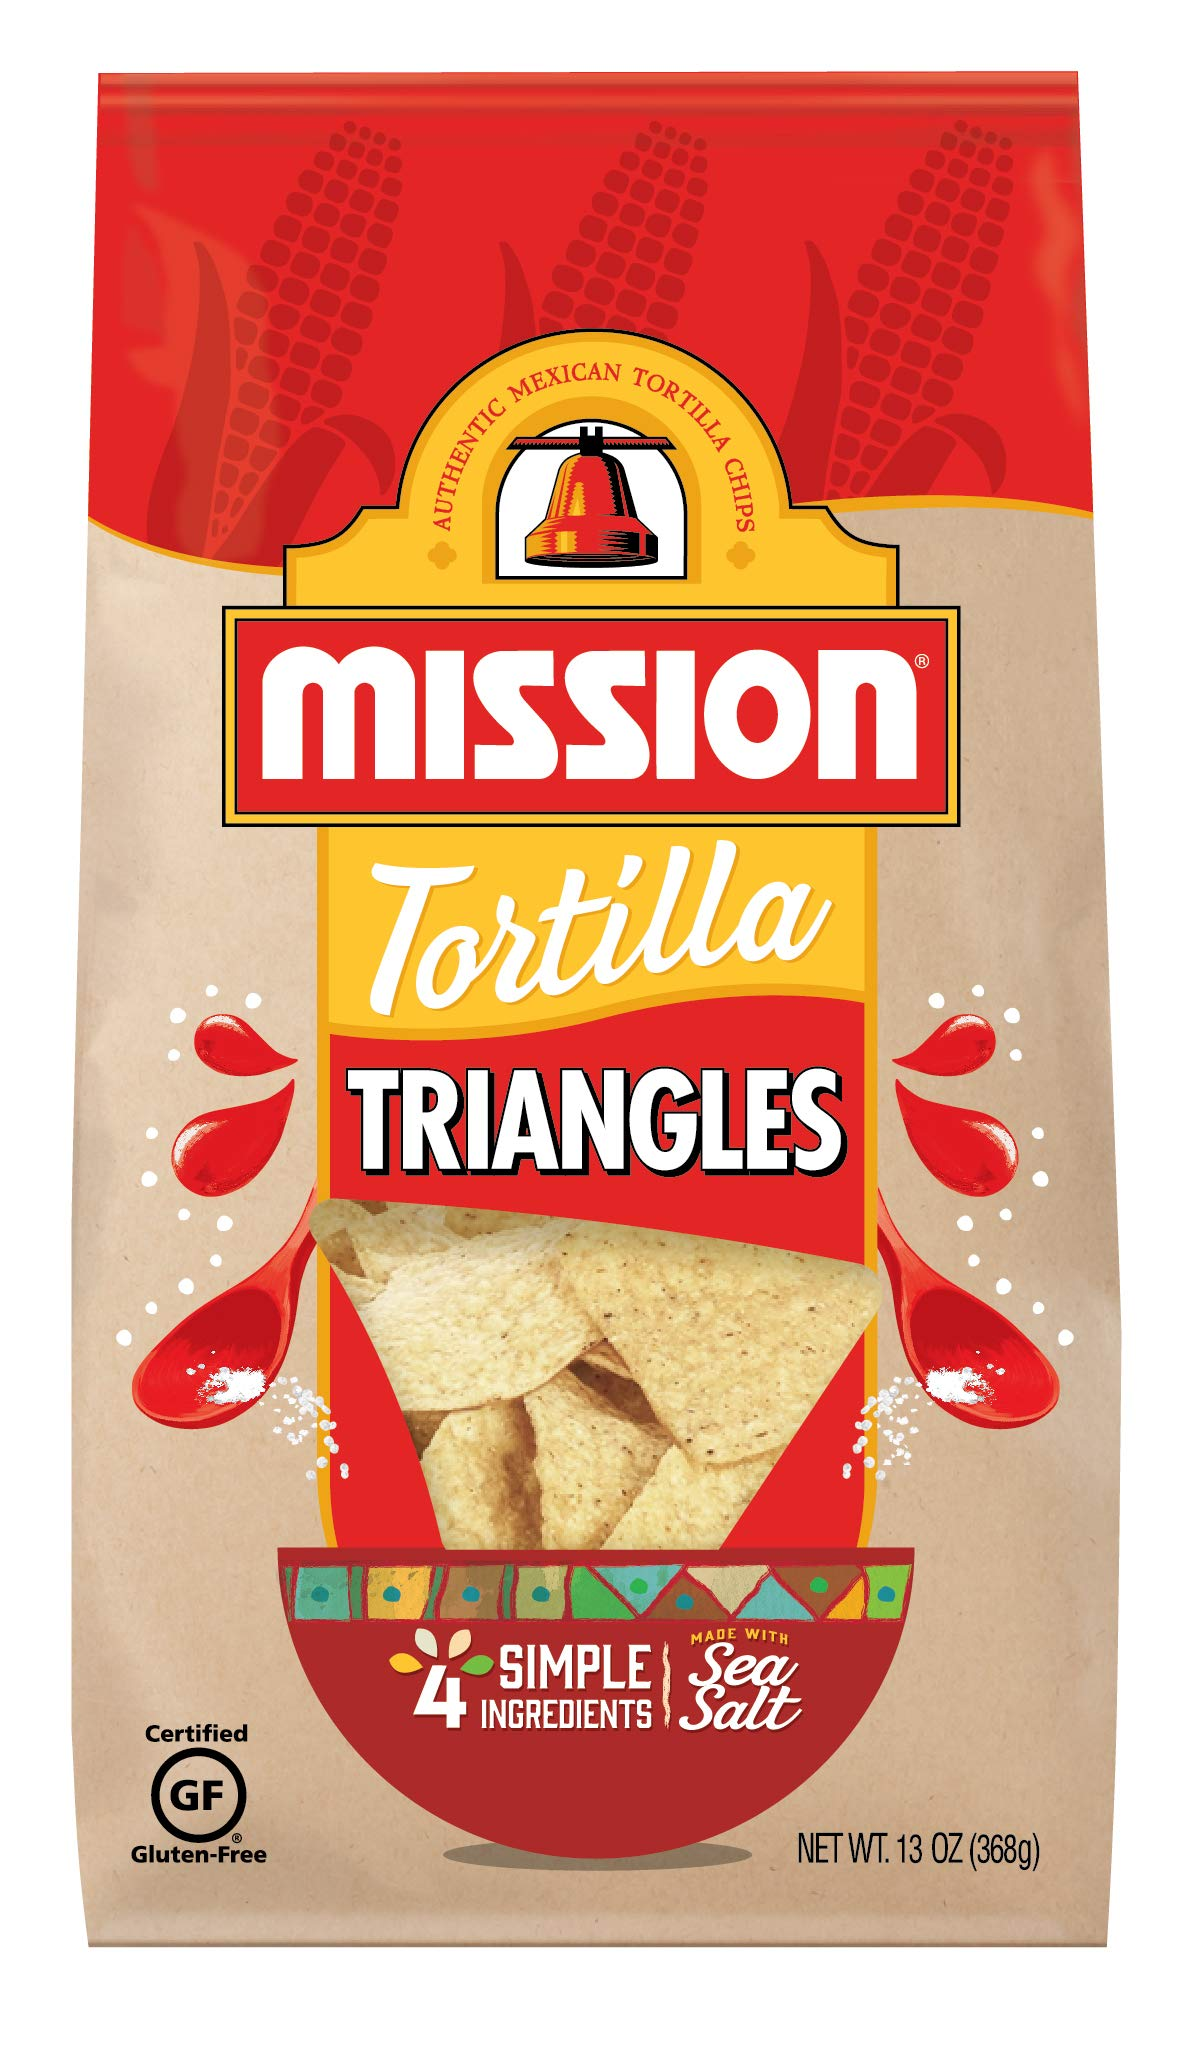 Mission Triangles Tortilla Chips   Gluten Free   Restaurant Style Corn Tortilla Chips   13 oz by MISSION